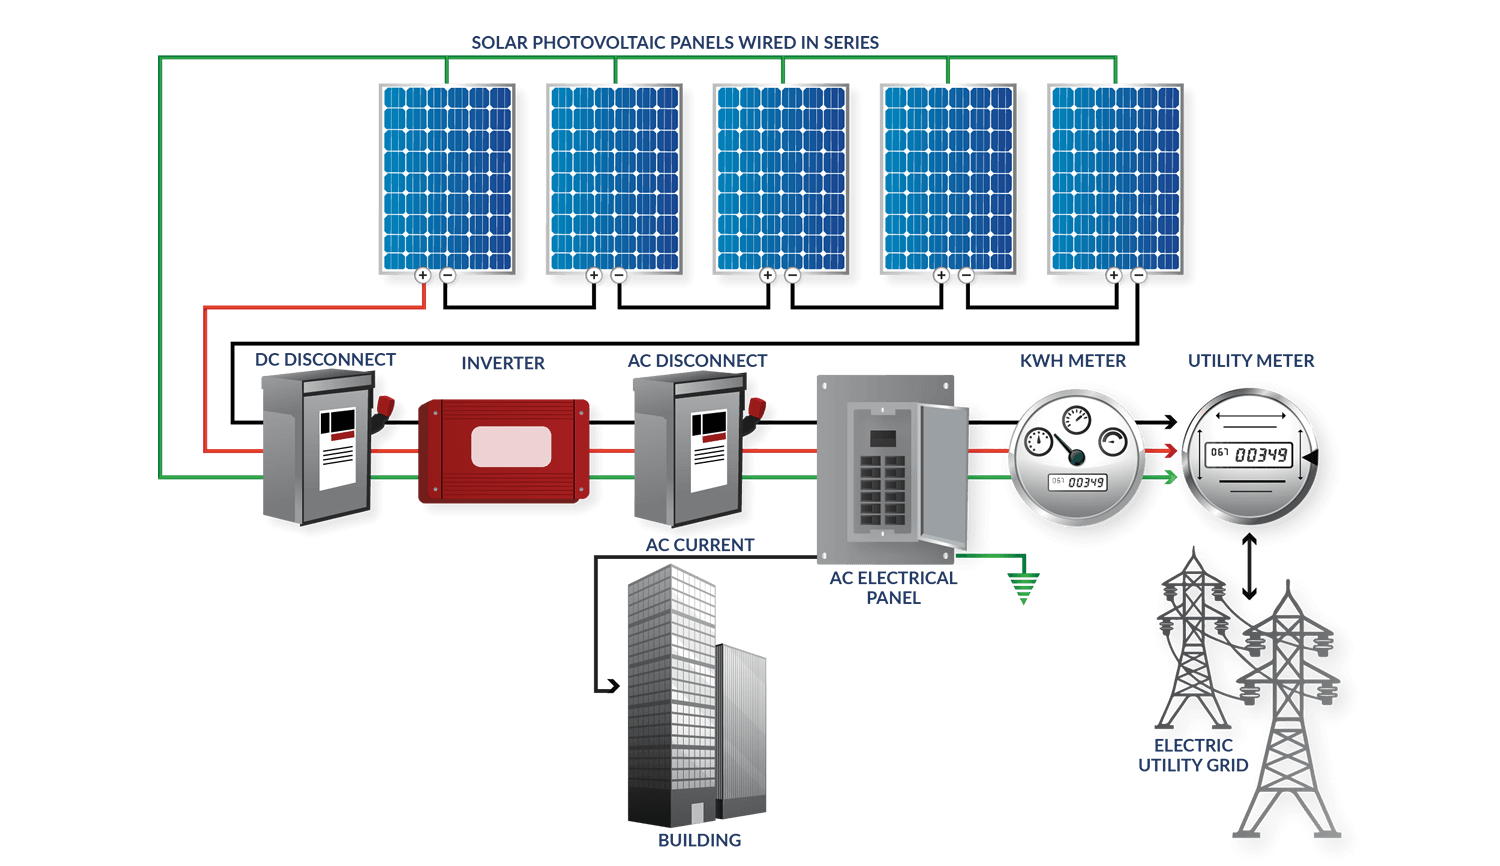 Innova Solar Colombia How Panels Work Diagram Panel Photovoltaic In Addition There Is Usually The Incorporation Of A Monitoring And Data Management System That Enables Tracking Energy Produced By Pv